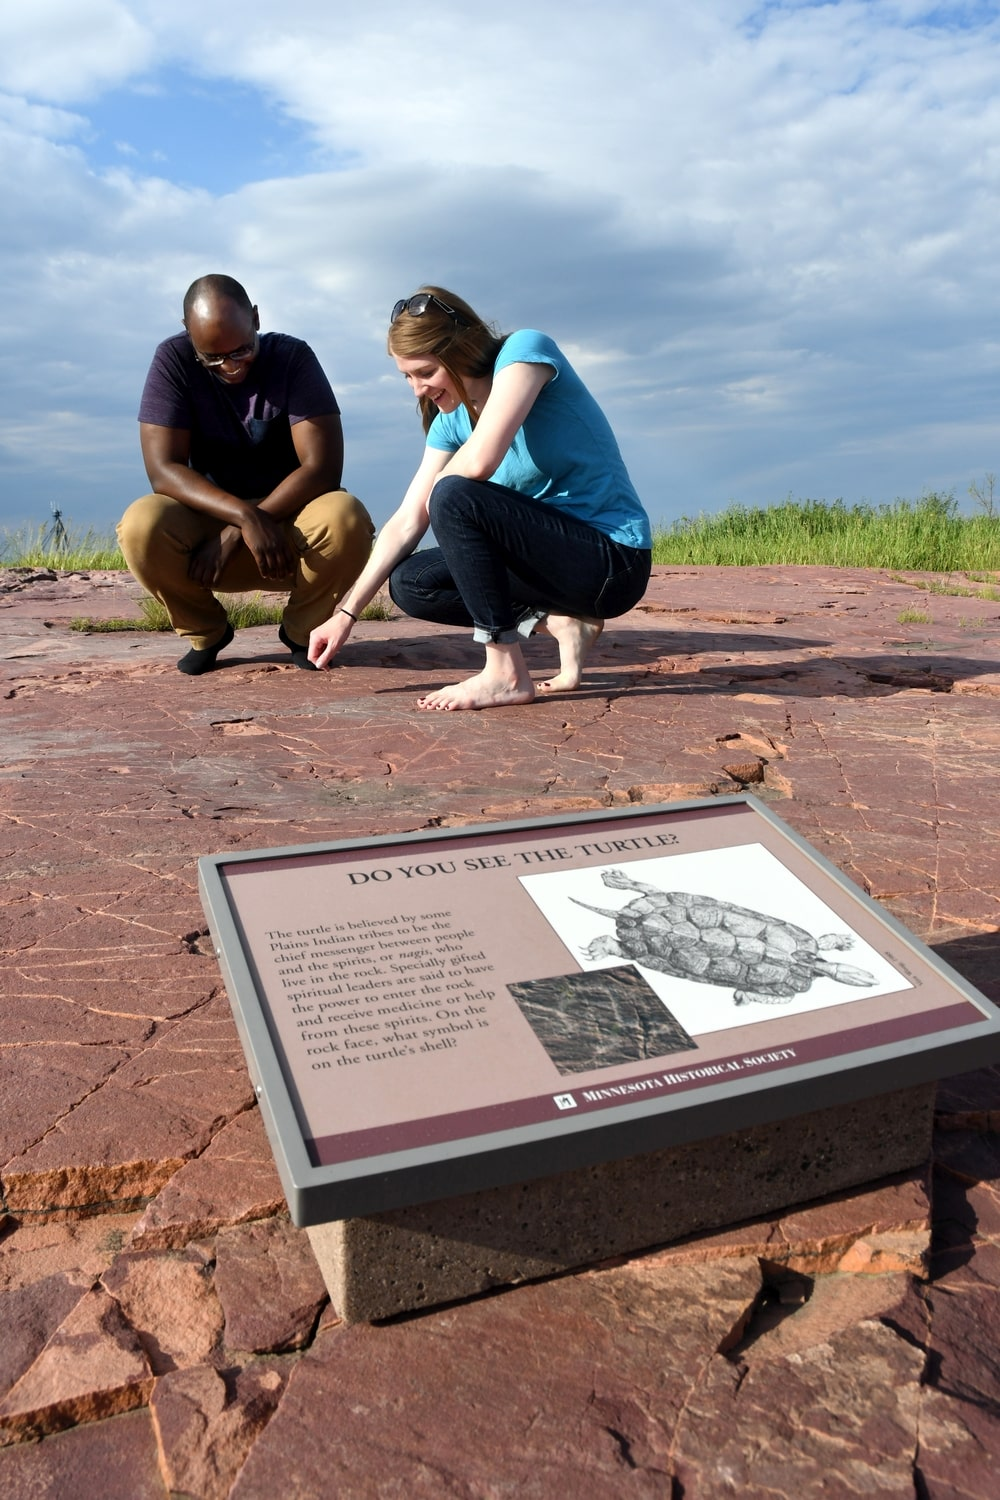 Kamil and Amy search for a carving of a turtle at the Jeffers Petroglyphs site